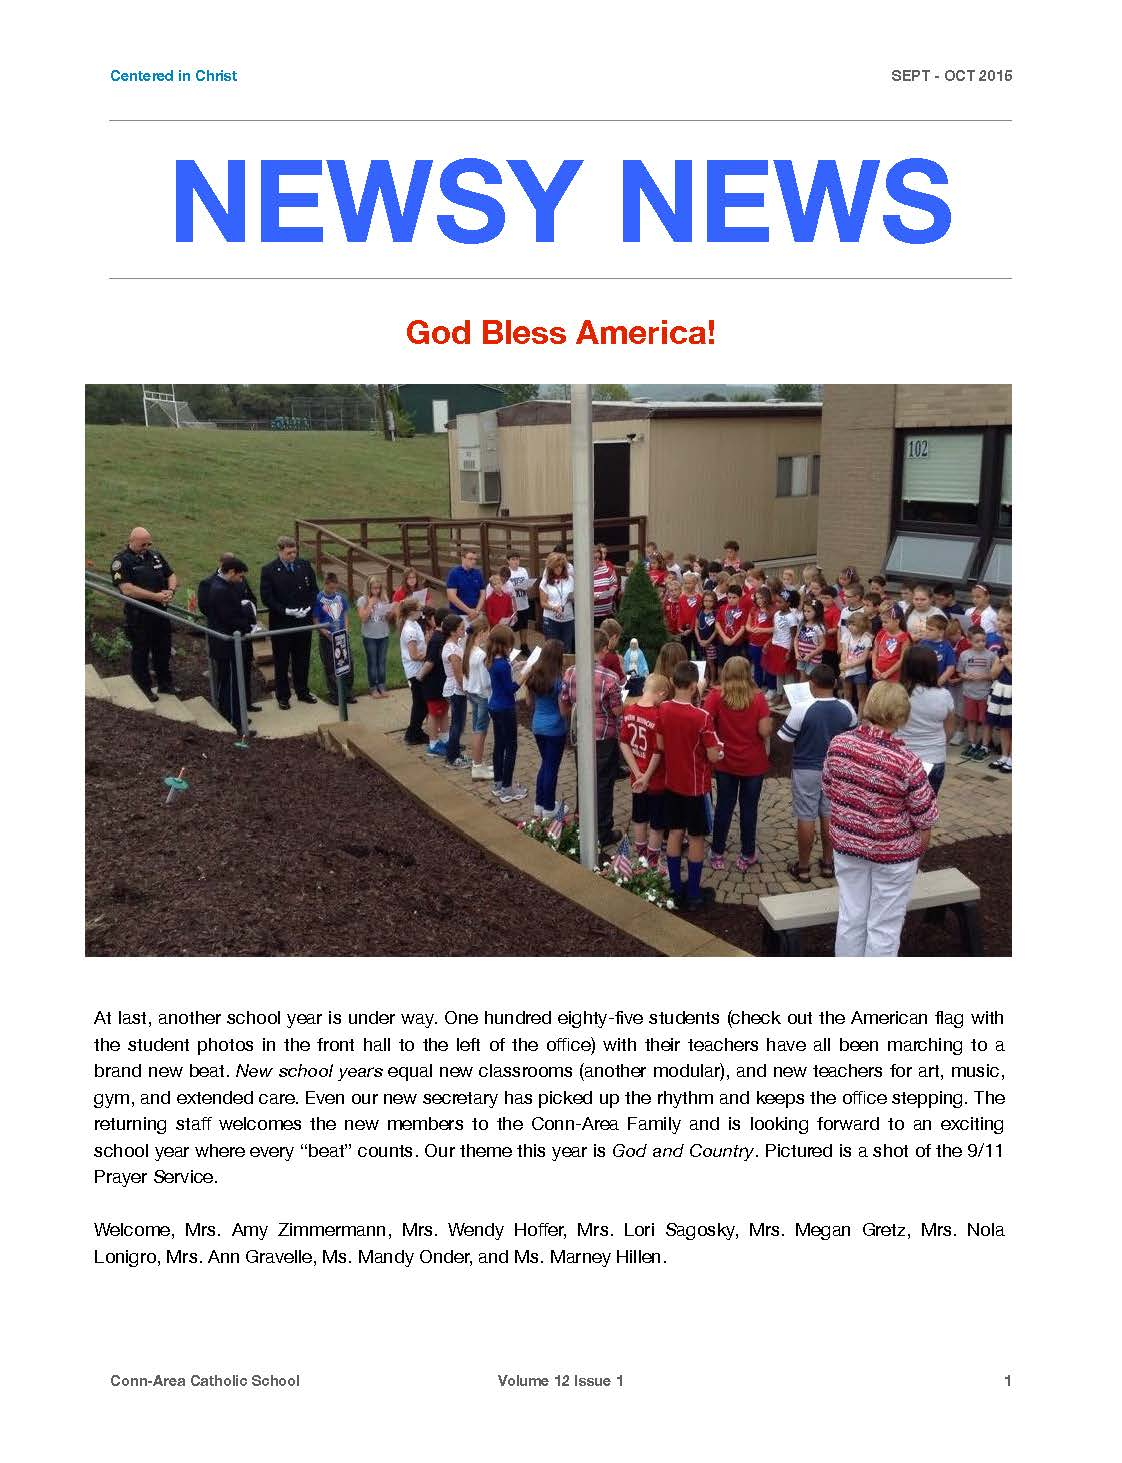 Newsy News - Sept./Oct. 2015